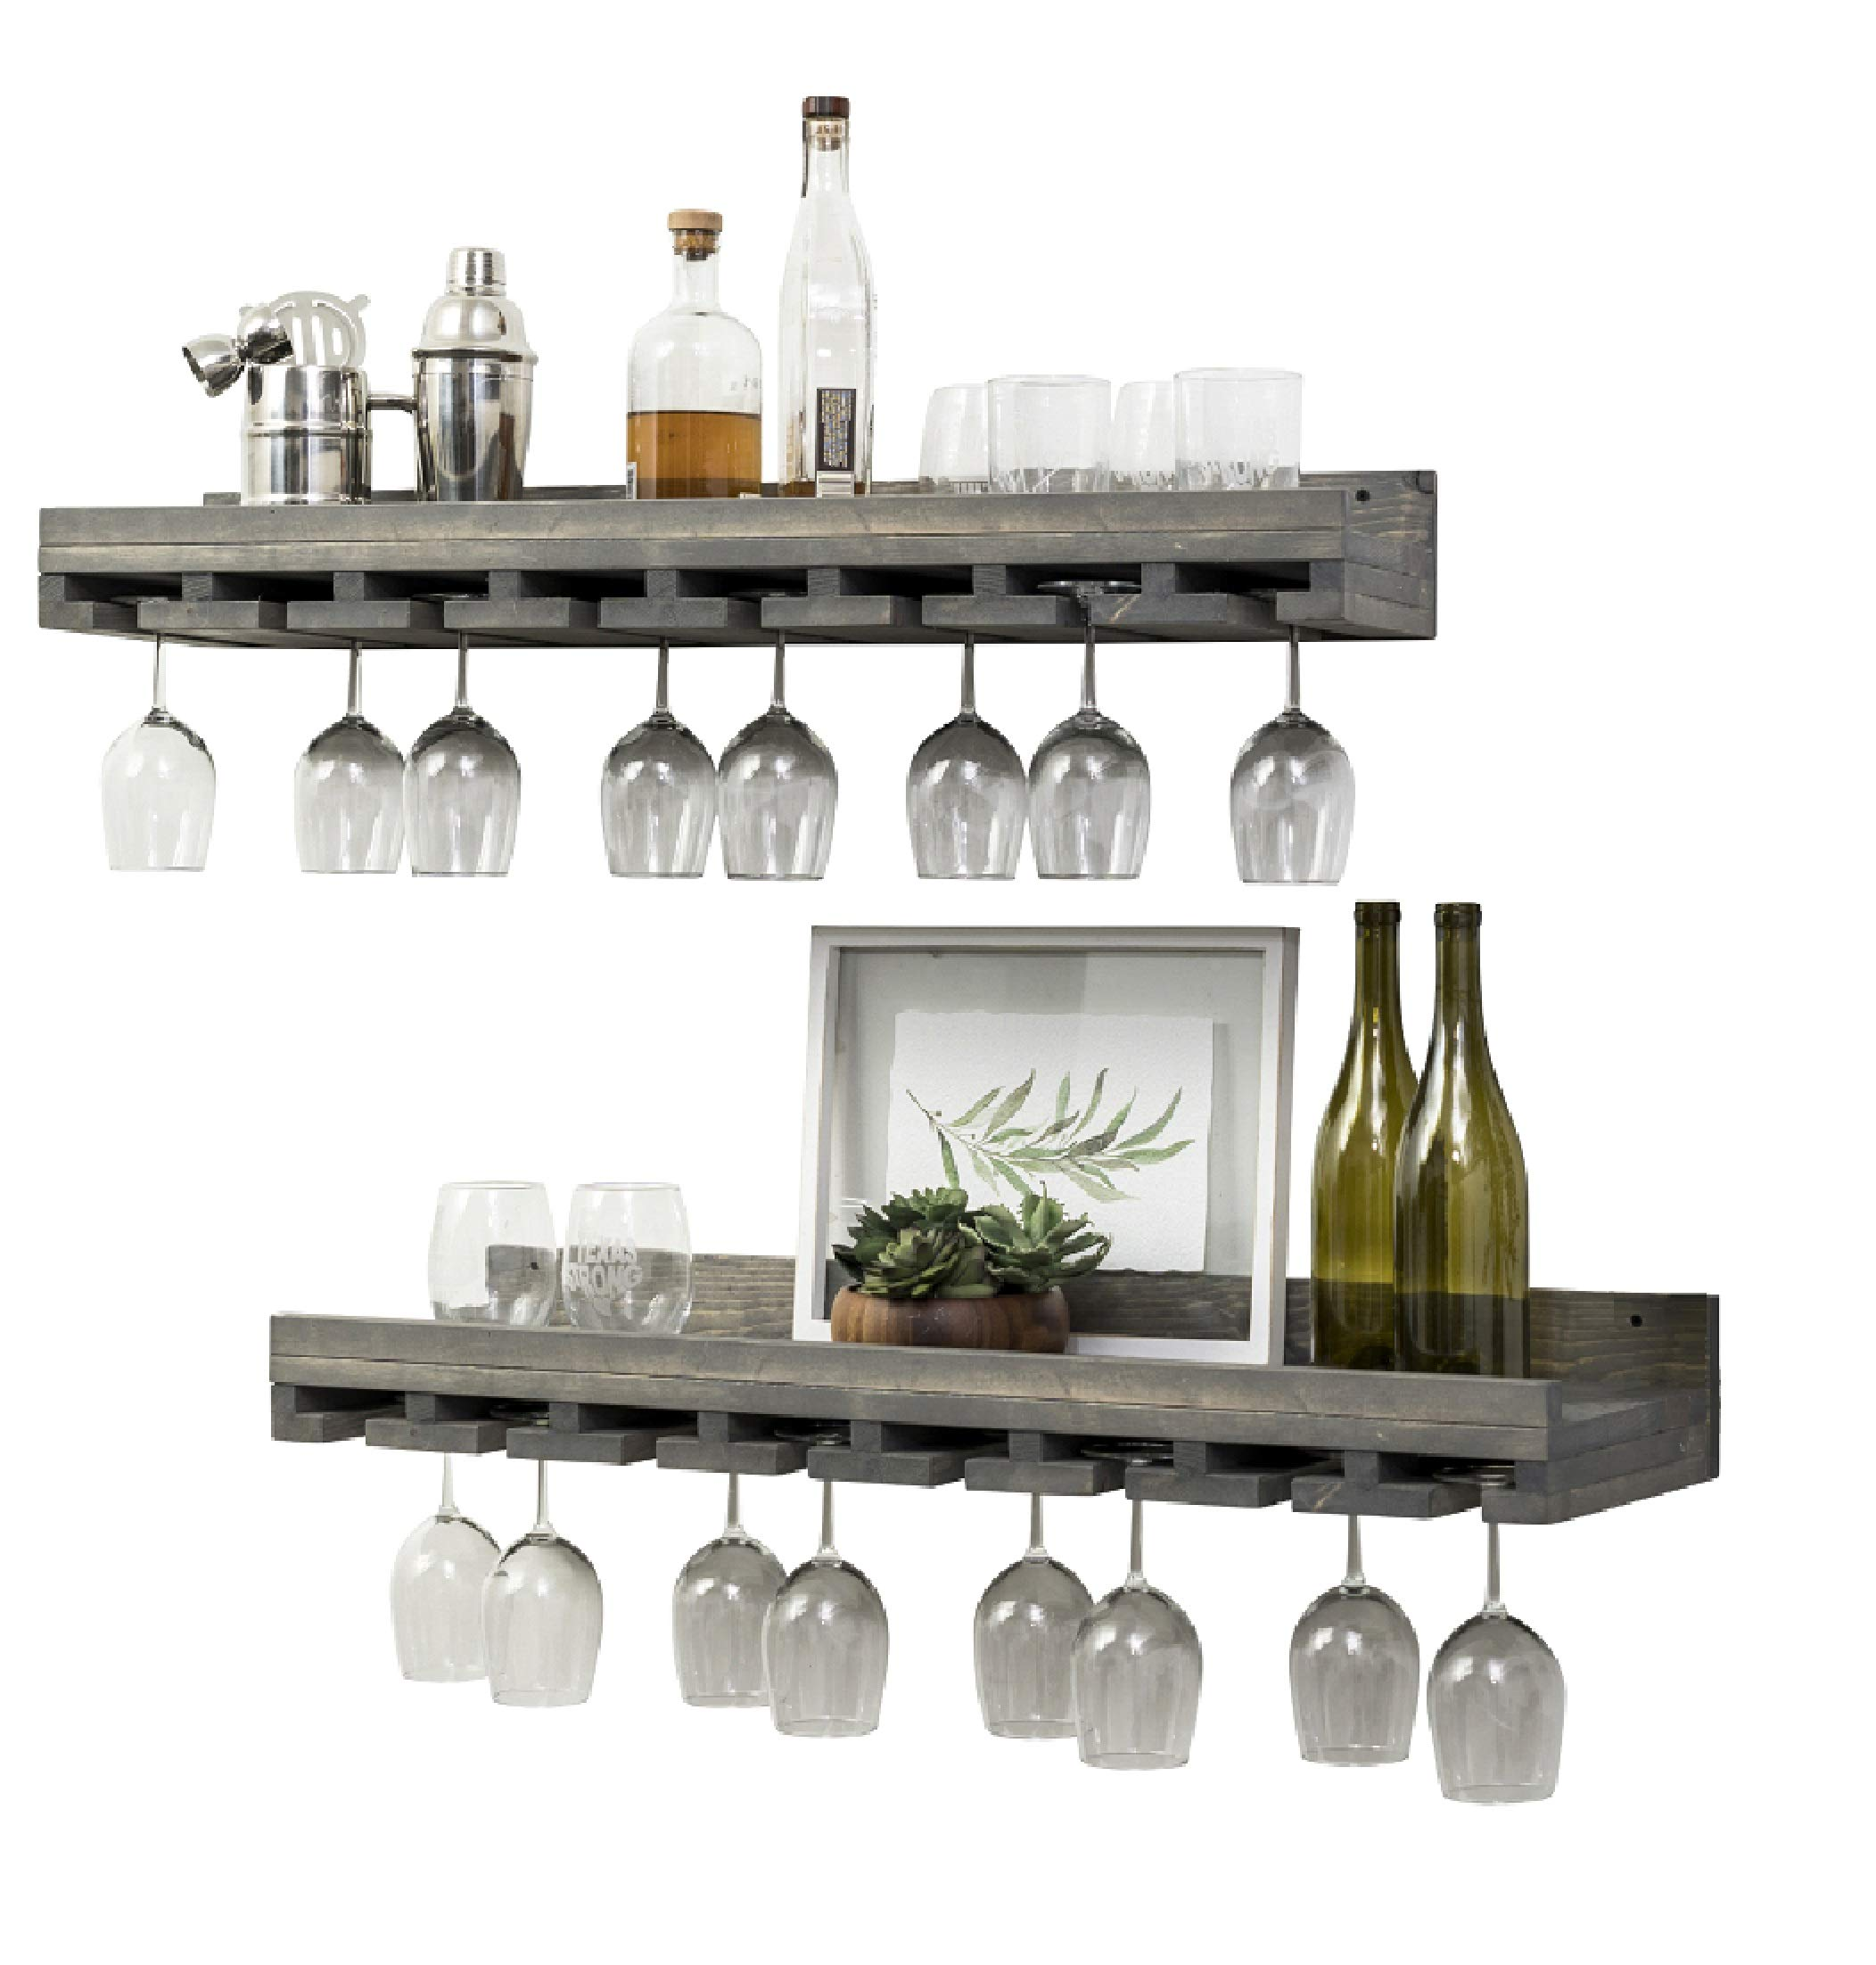 Rustic Wooden Wall Mounted Handmade Tiered Wine Glass Racks (Grey, 36 Inch)